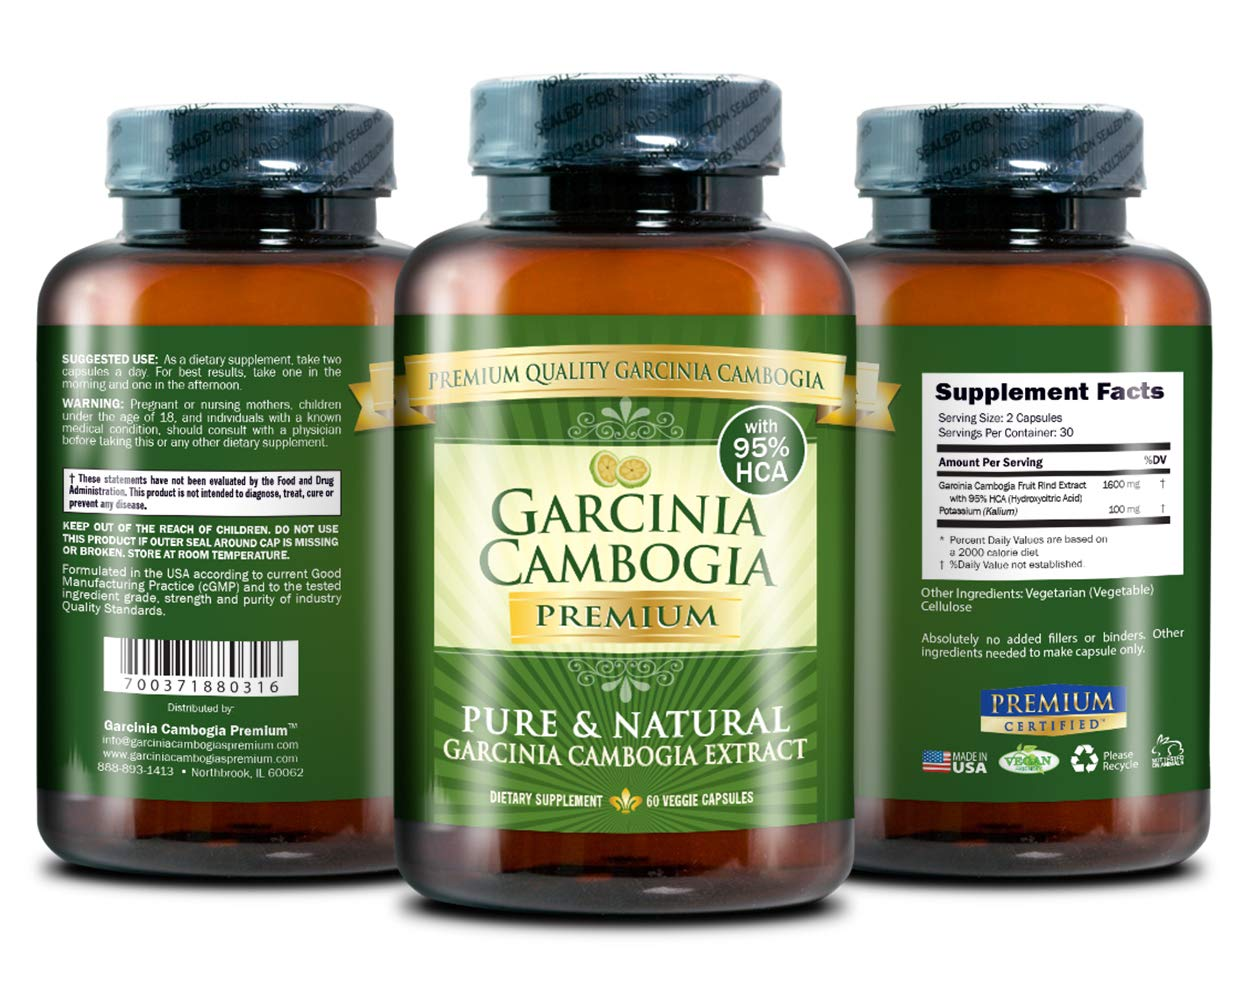 Garcinia Cambogia Premium 95% HCA - Best Natural Weight Loss, Quick Fat Burner and Appetite Suppressant - 180 Vegan Capsules, 3 Months Supply - 100% Money Back Guarantee! by Garcinia Cambogia Premium (Image #2)